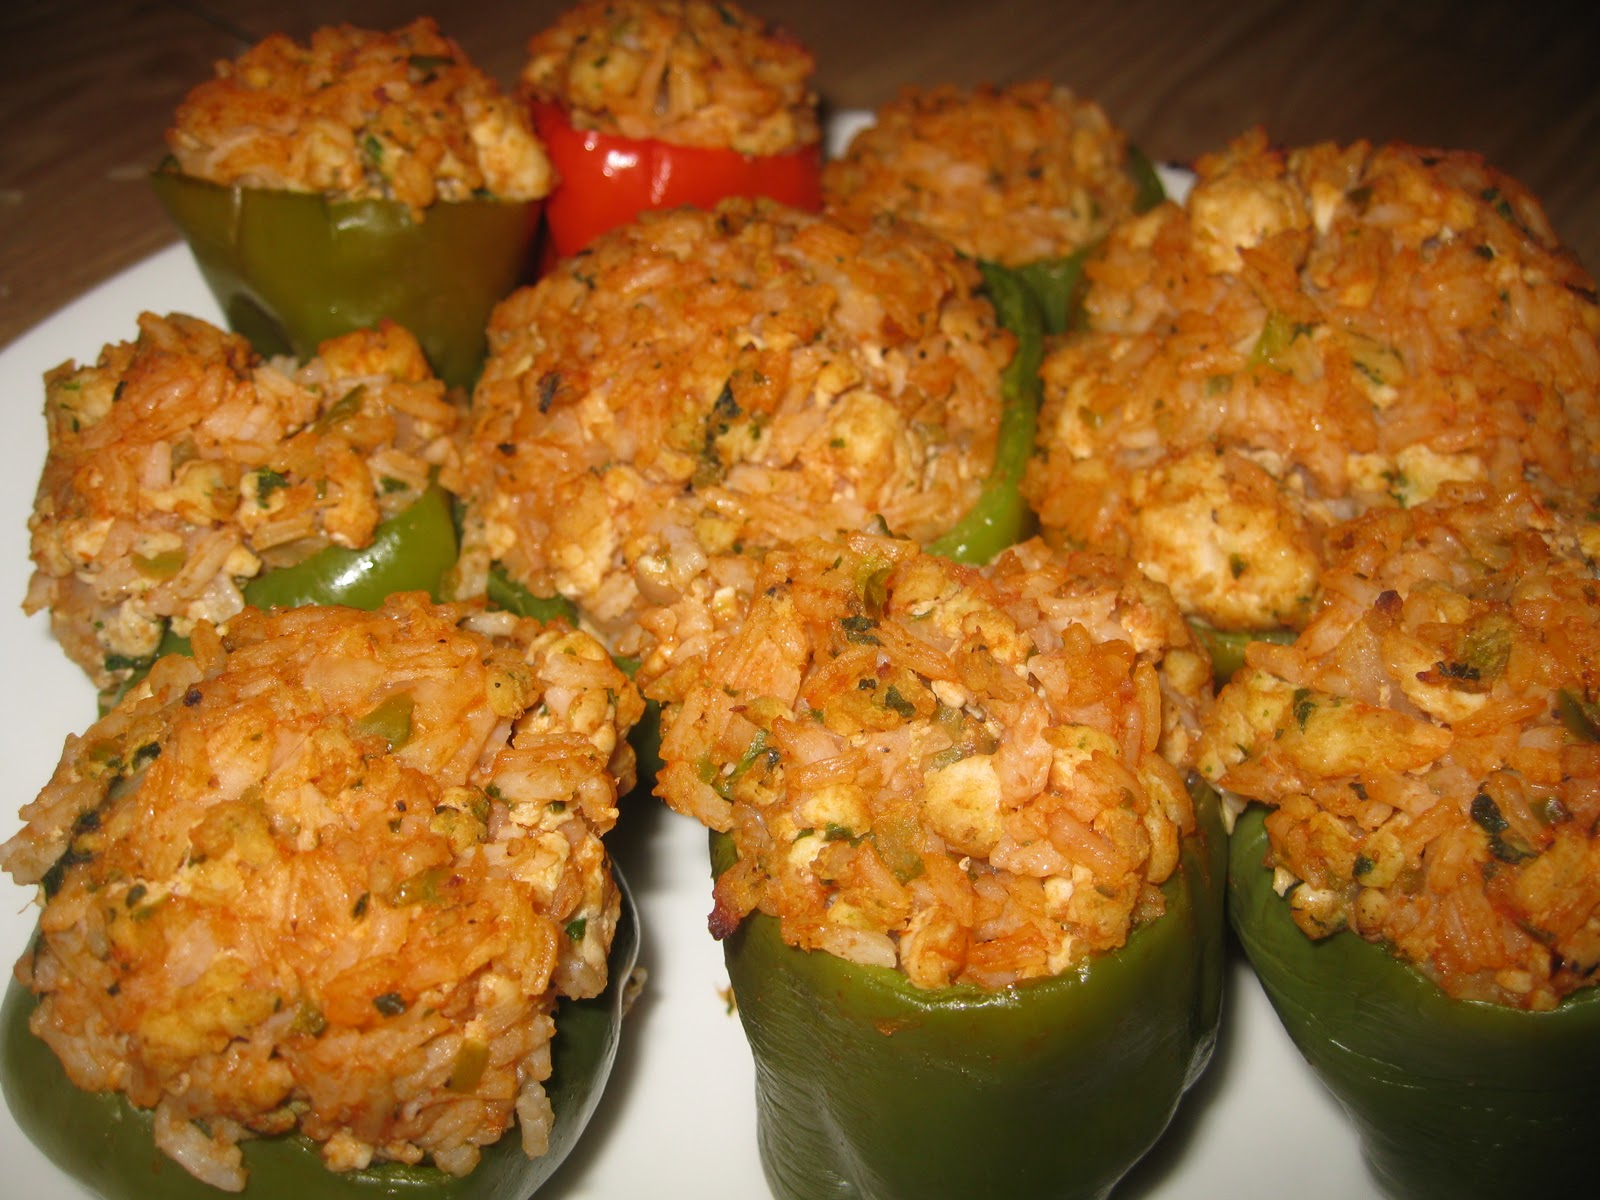 Stuffed+bell+pepper+(4).jpg#stuffed%20bell%20peppers%201600x1200